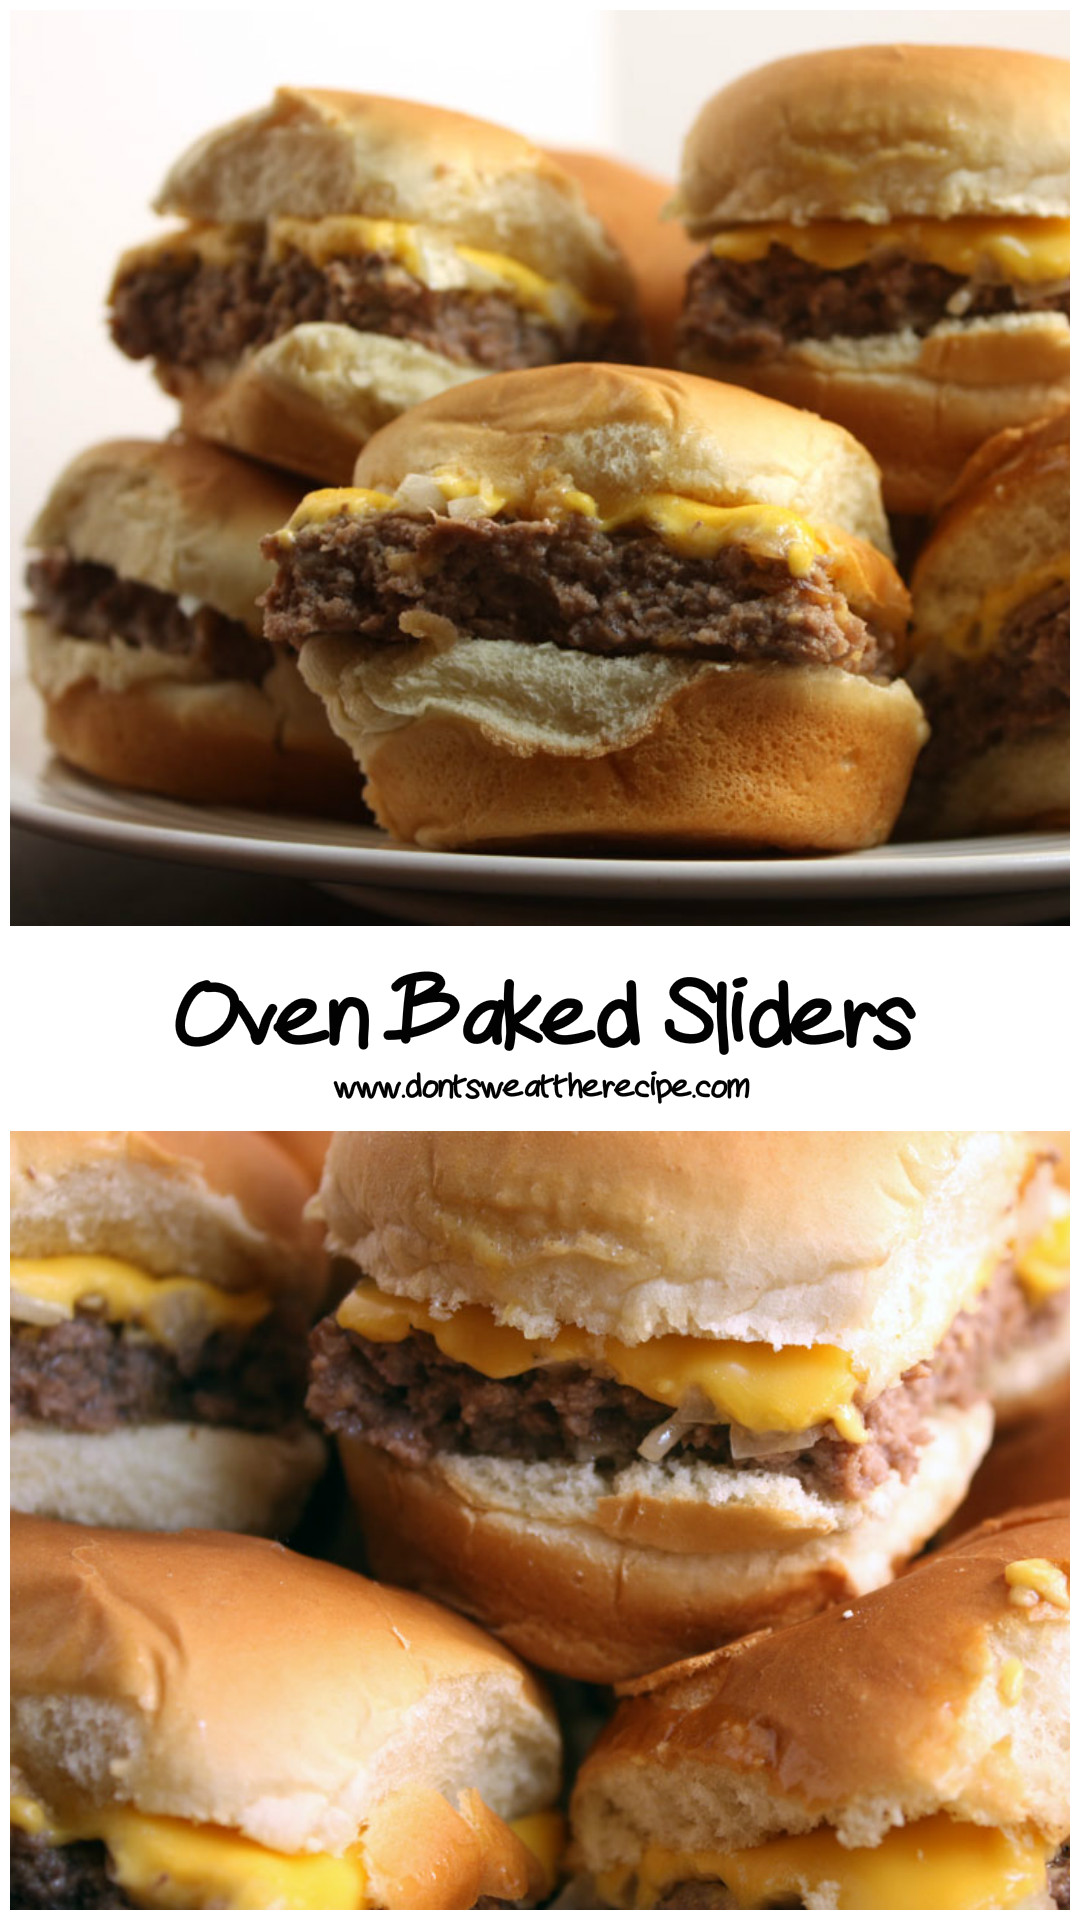 Oven Baked Sliders - Don't Sweat The Recipe